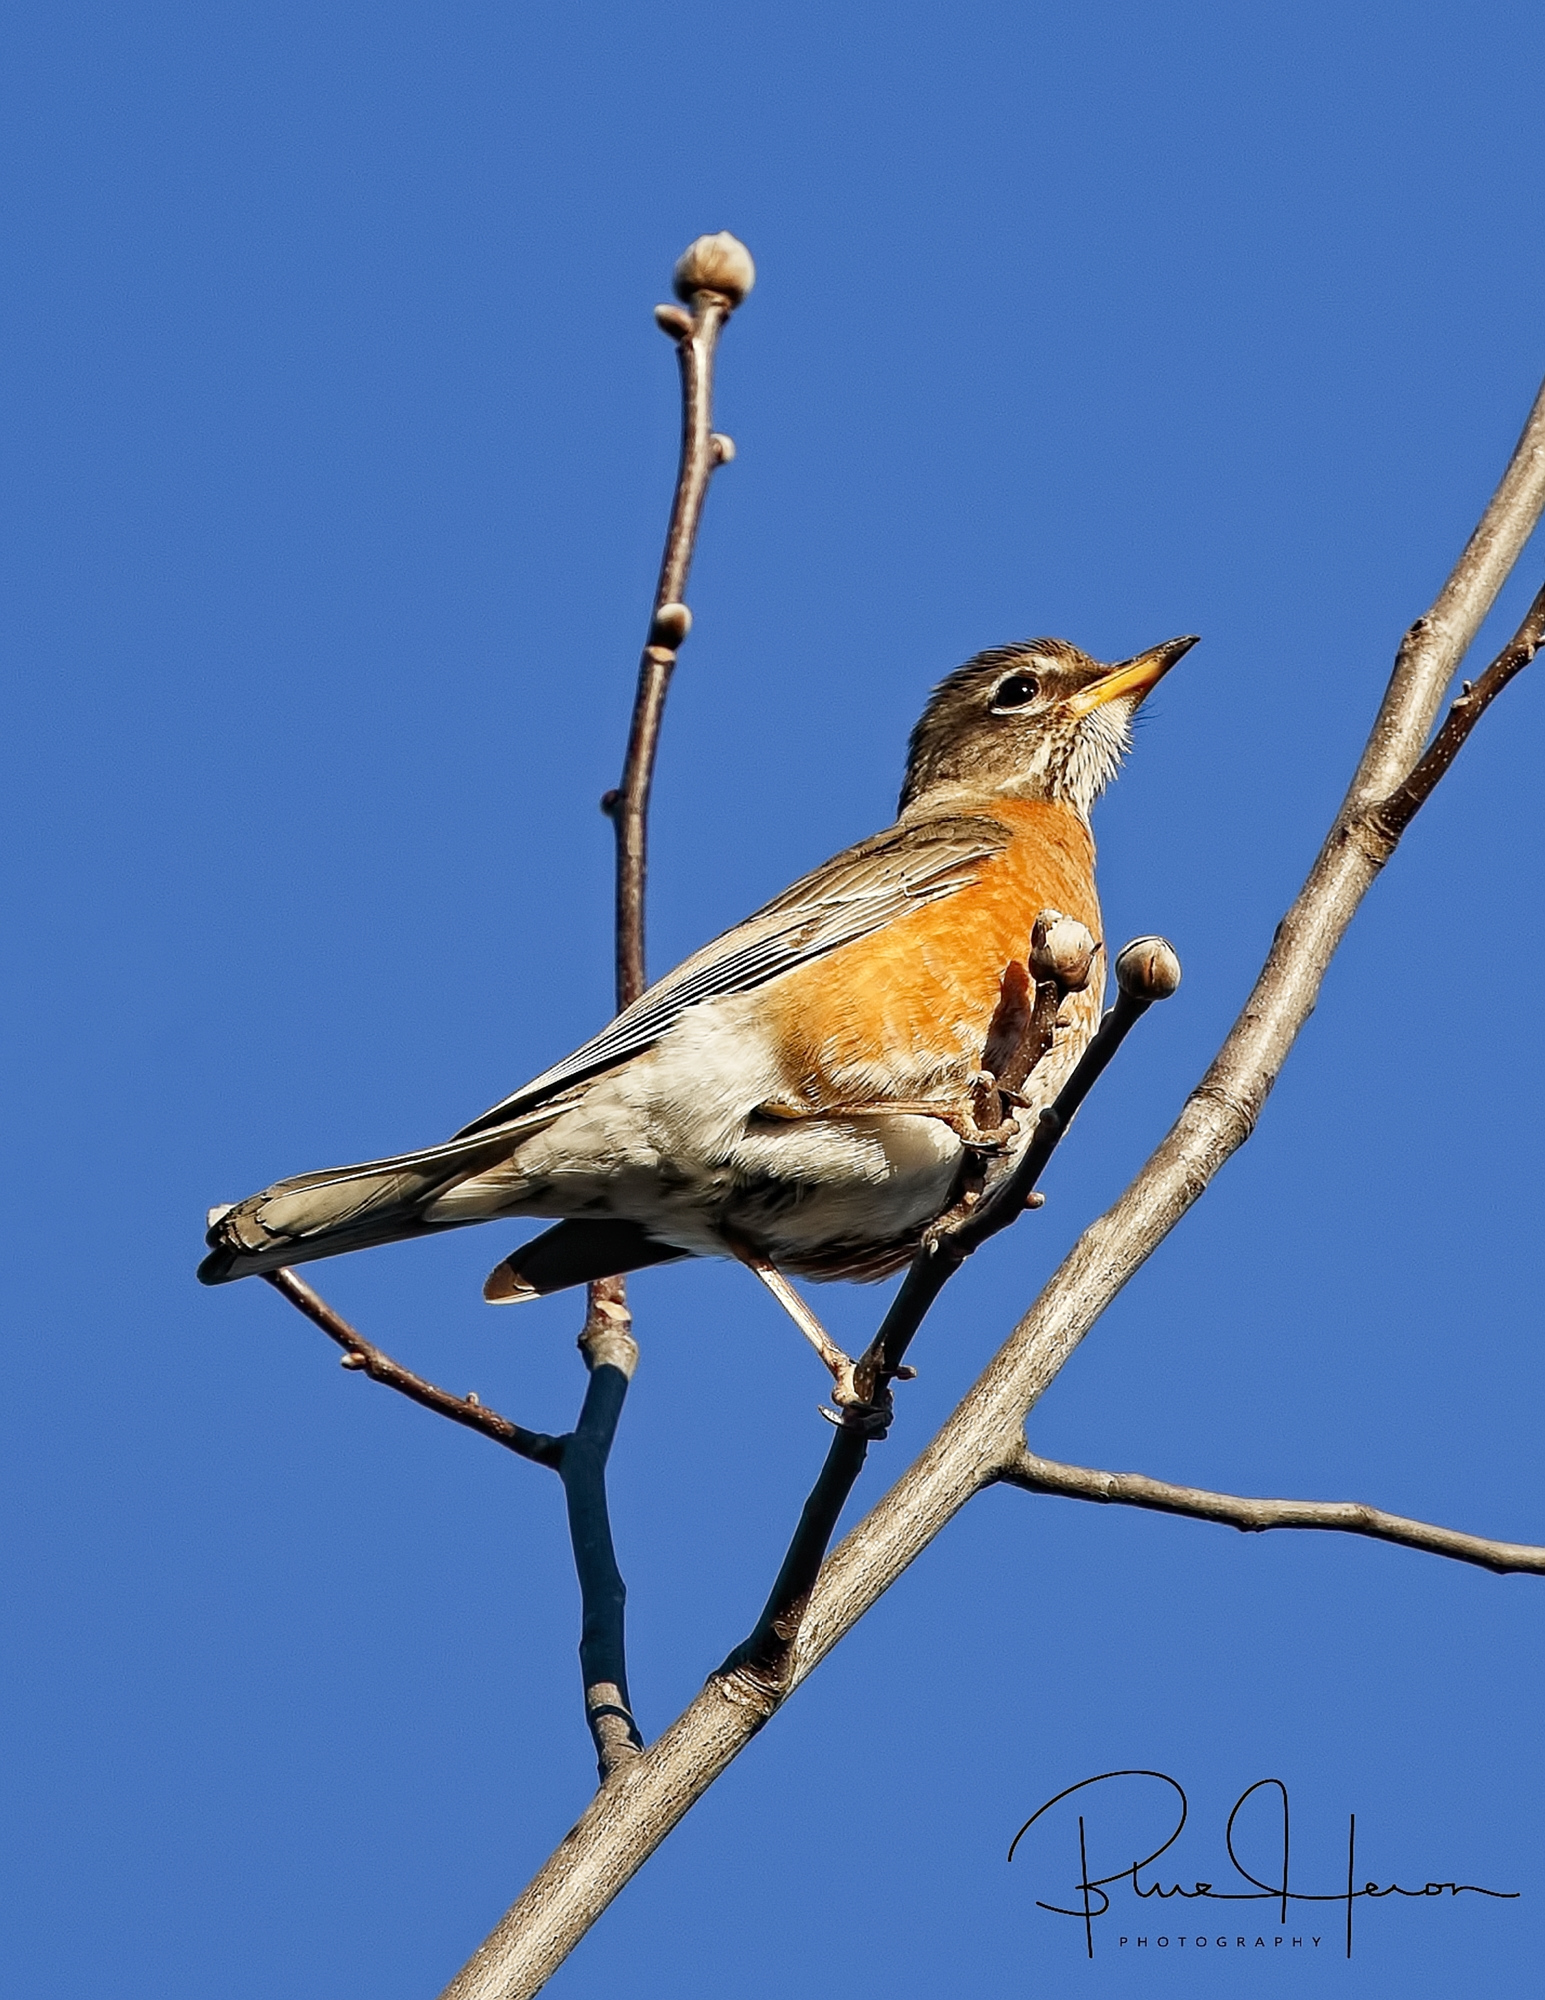 Robins heading north are a sure sign of spring